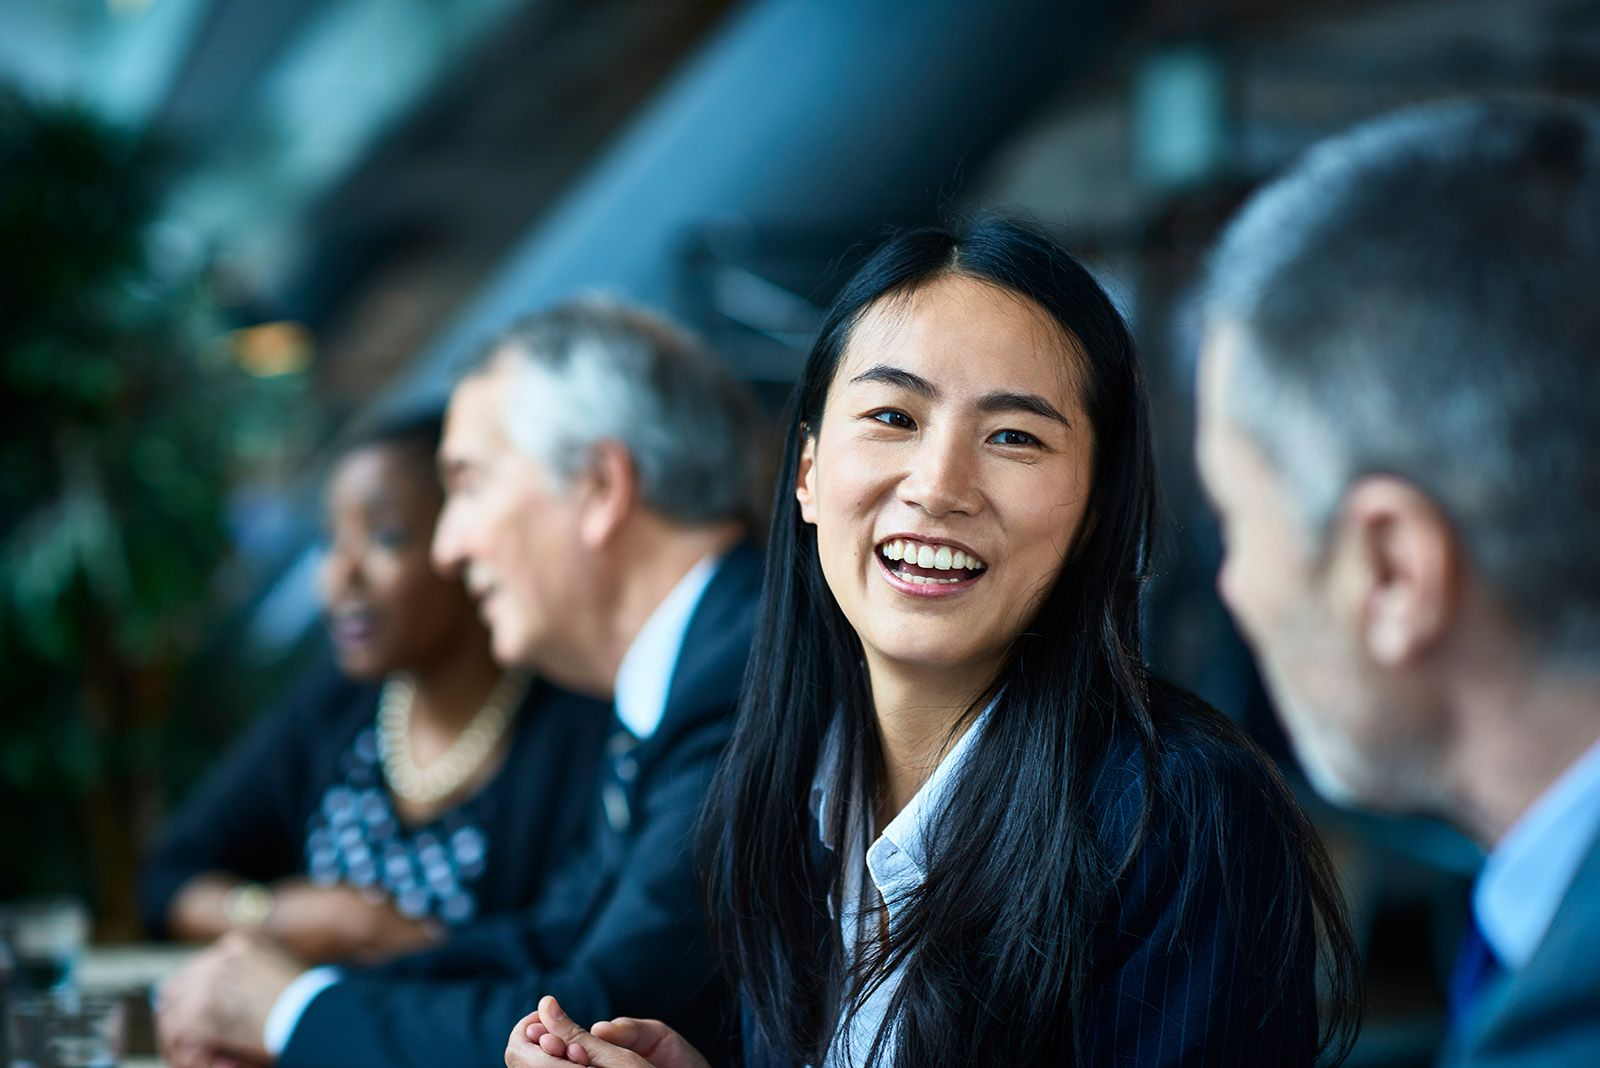 smiling woman looking at colleague